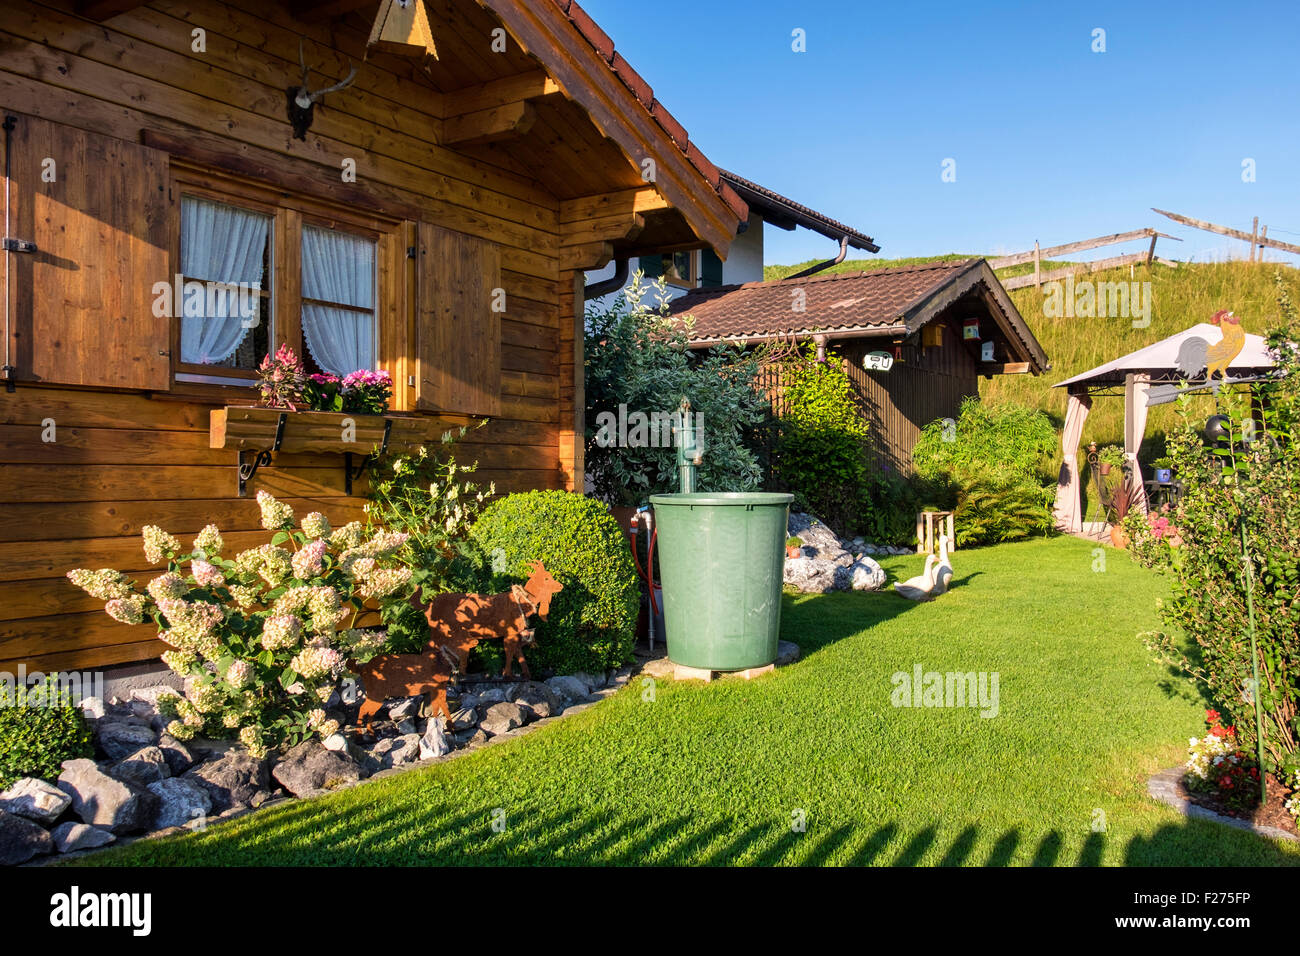 germany bavaria typical wooden house exterior and garden